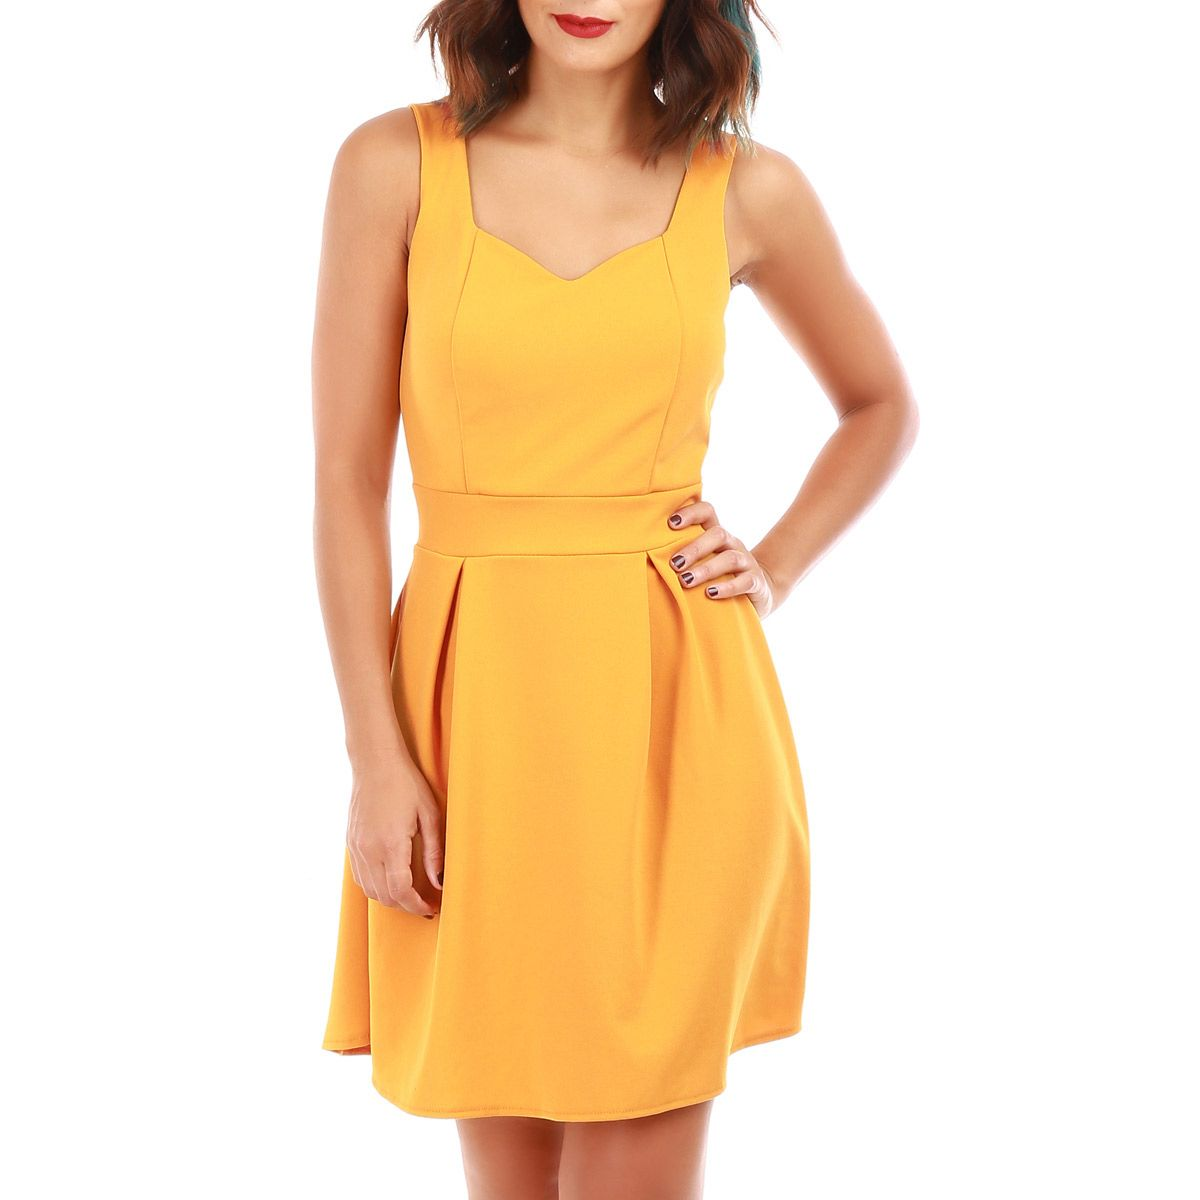 Robe coeur patineuse jaune moutarde